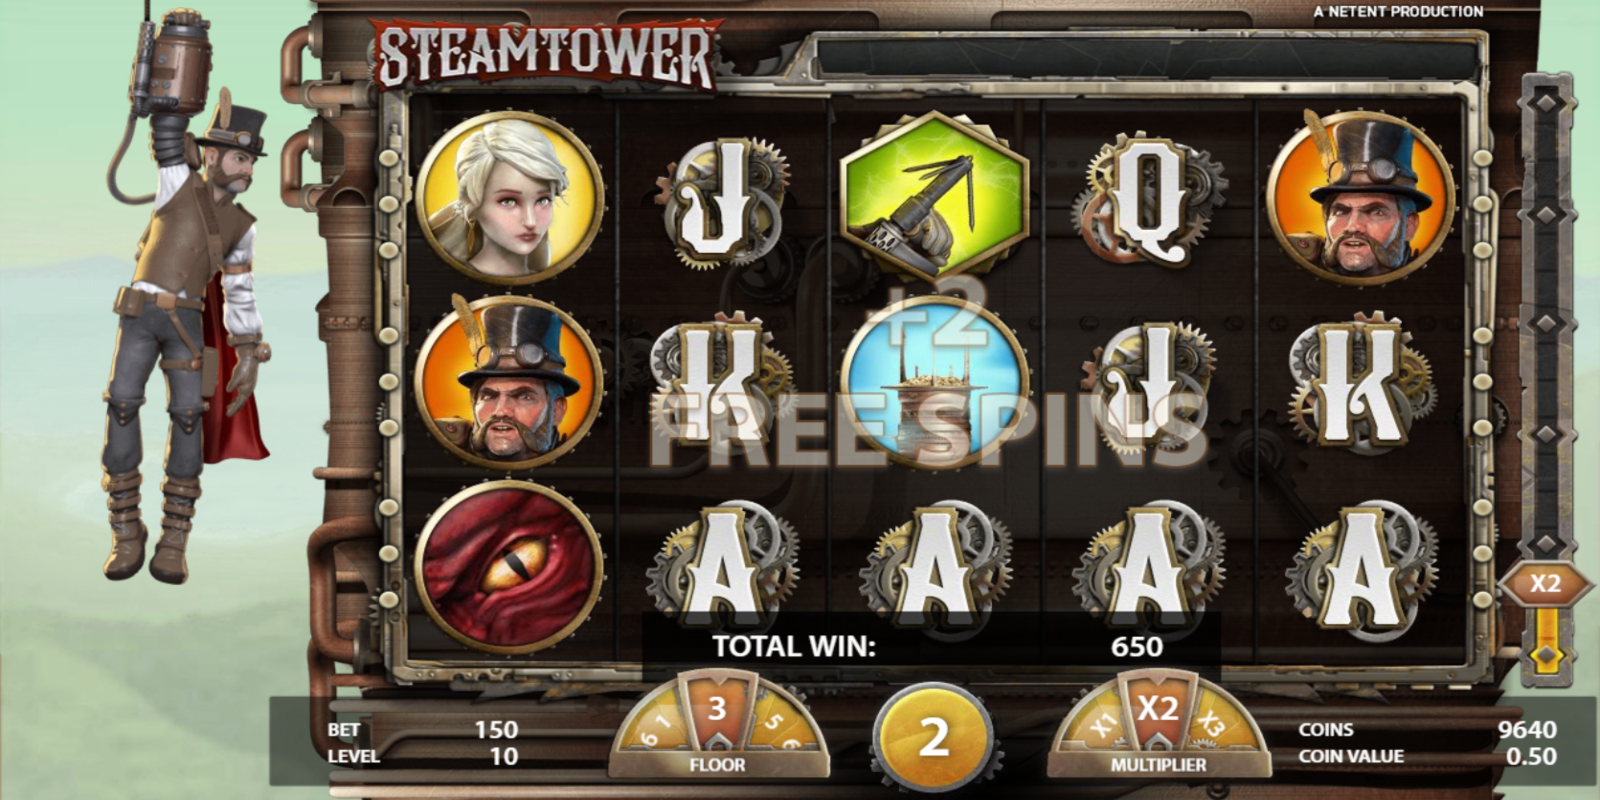 Steam Tower slot game Extra Free Spins during Free Spins